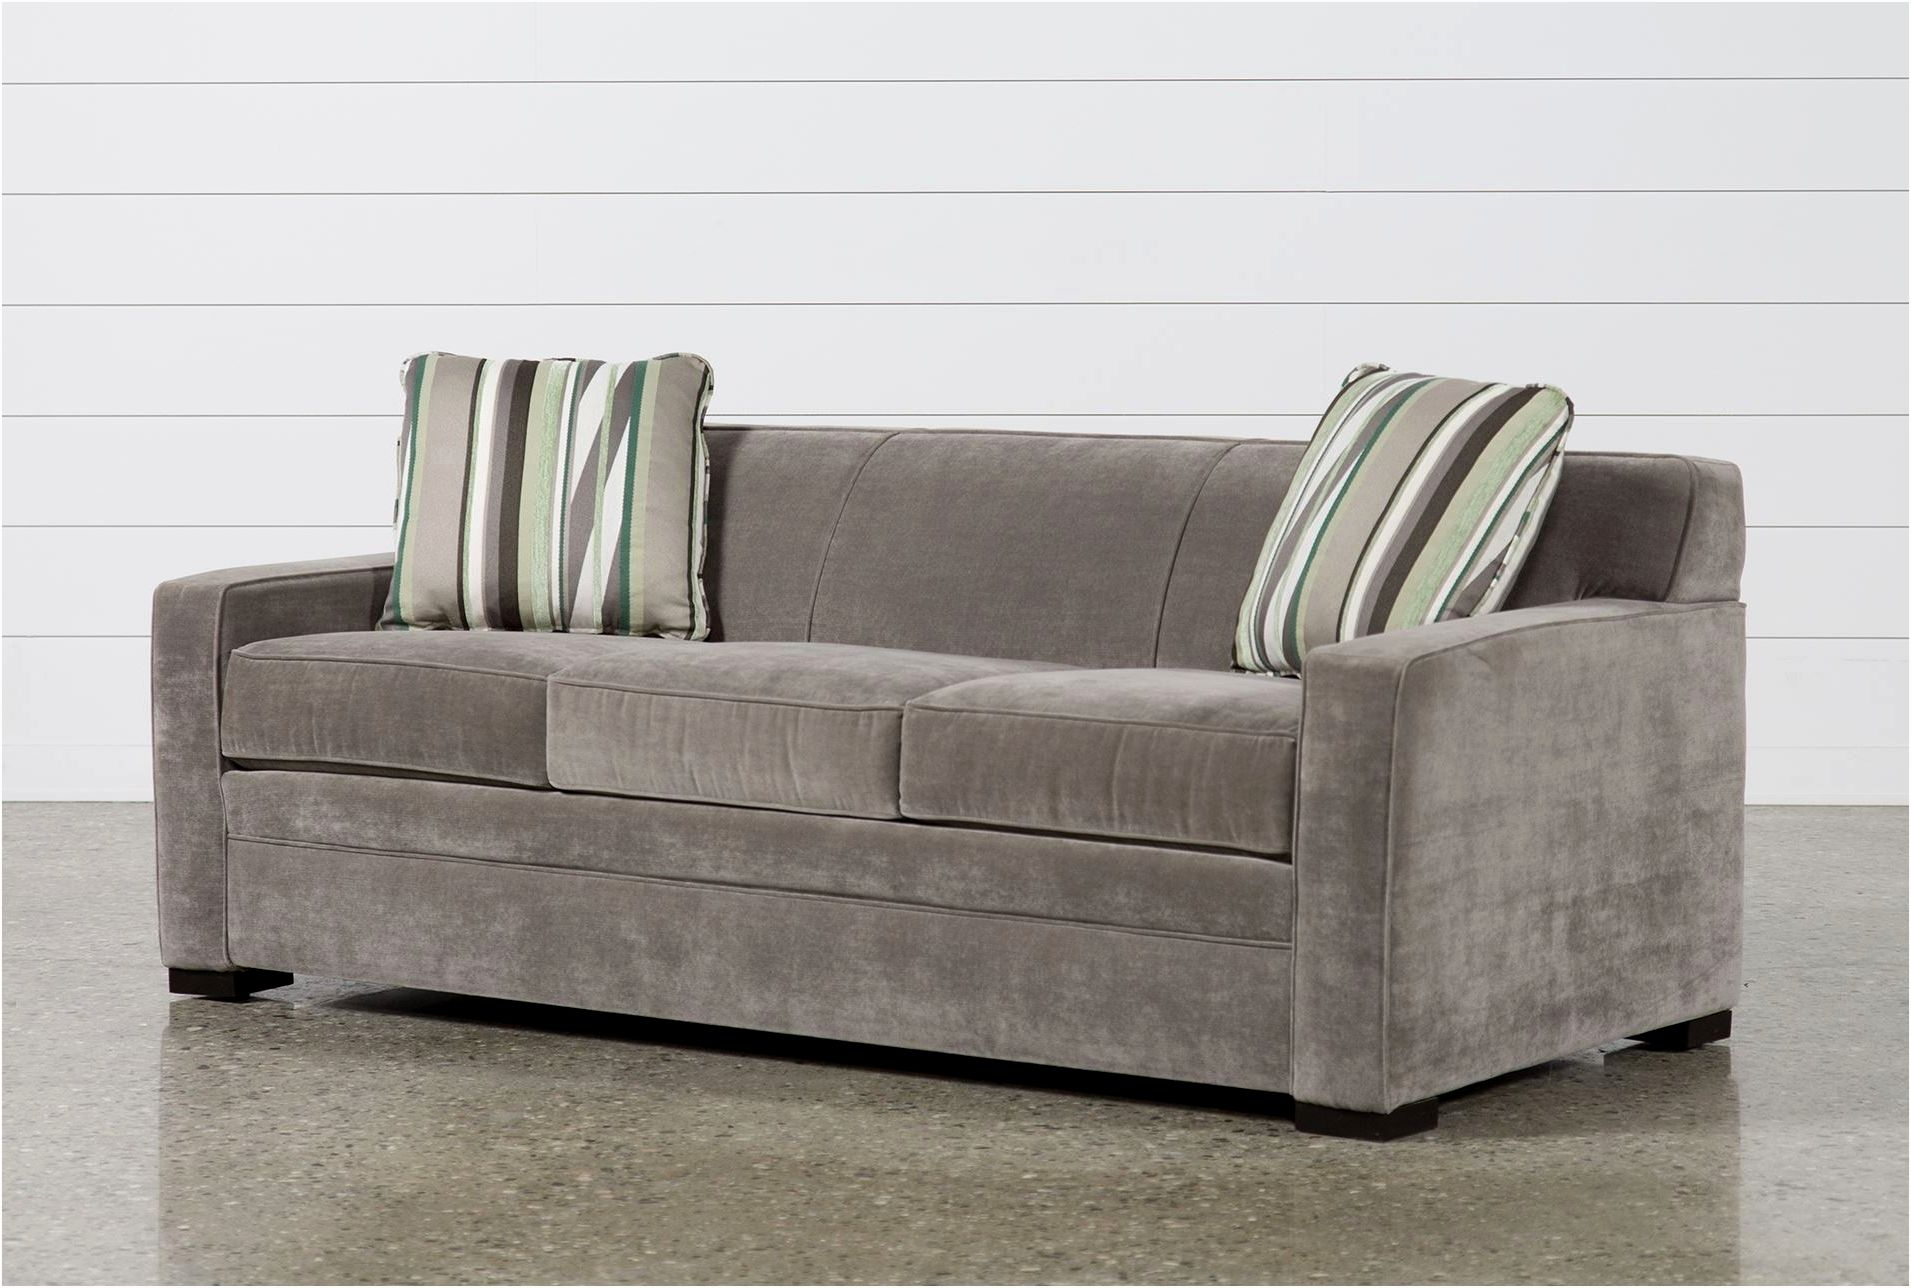 latest bed sofa walmart photograph-Incredible Bed sofa Walmart Collection